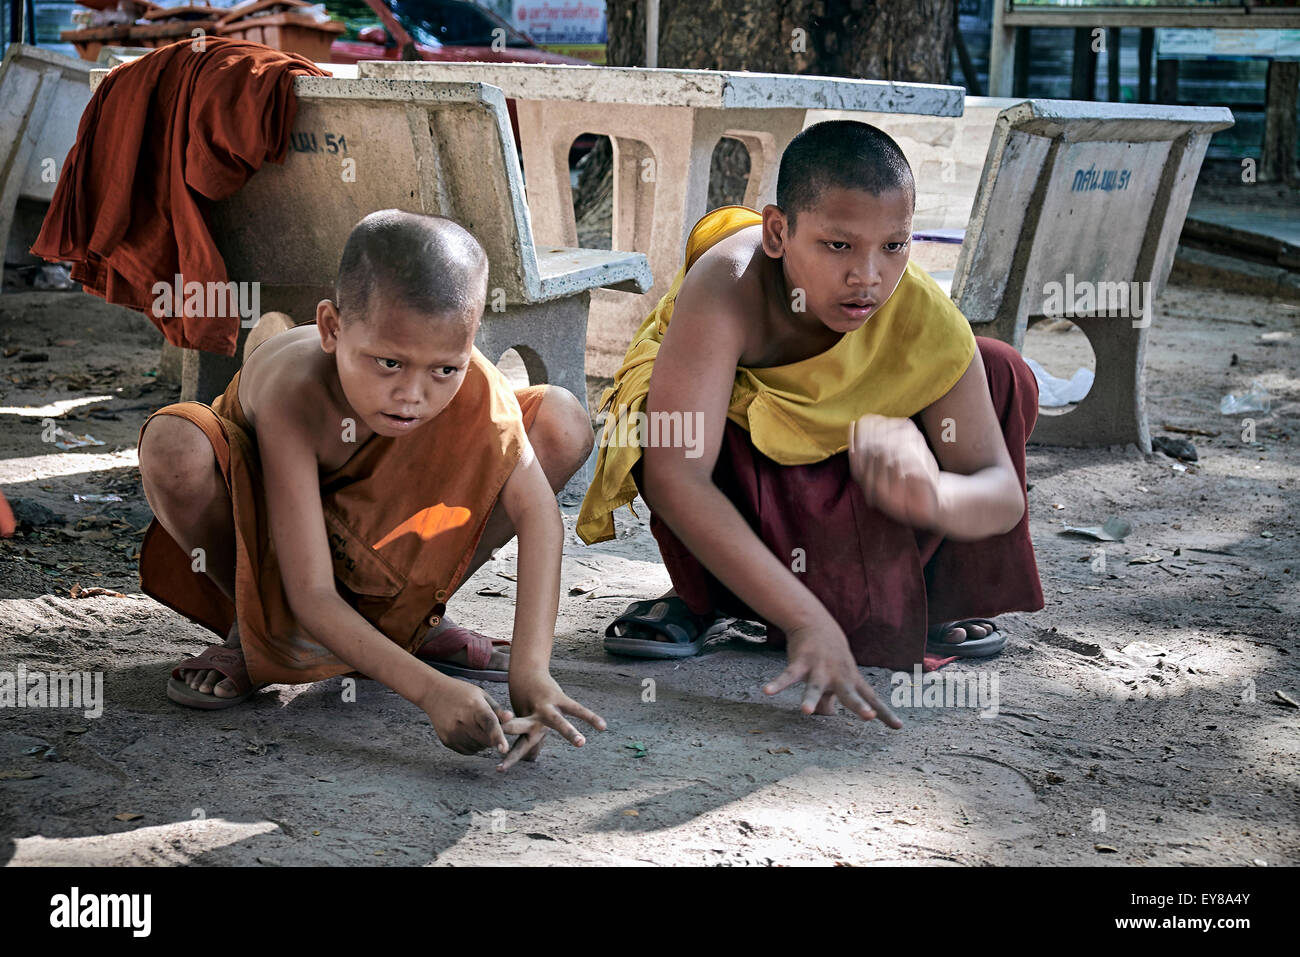 Young boy Buddhist monks playing traditional marbles game. Thailand S. E. Asia - Stock Image